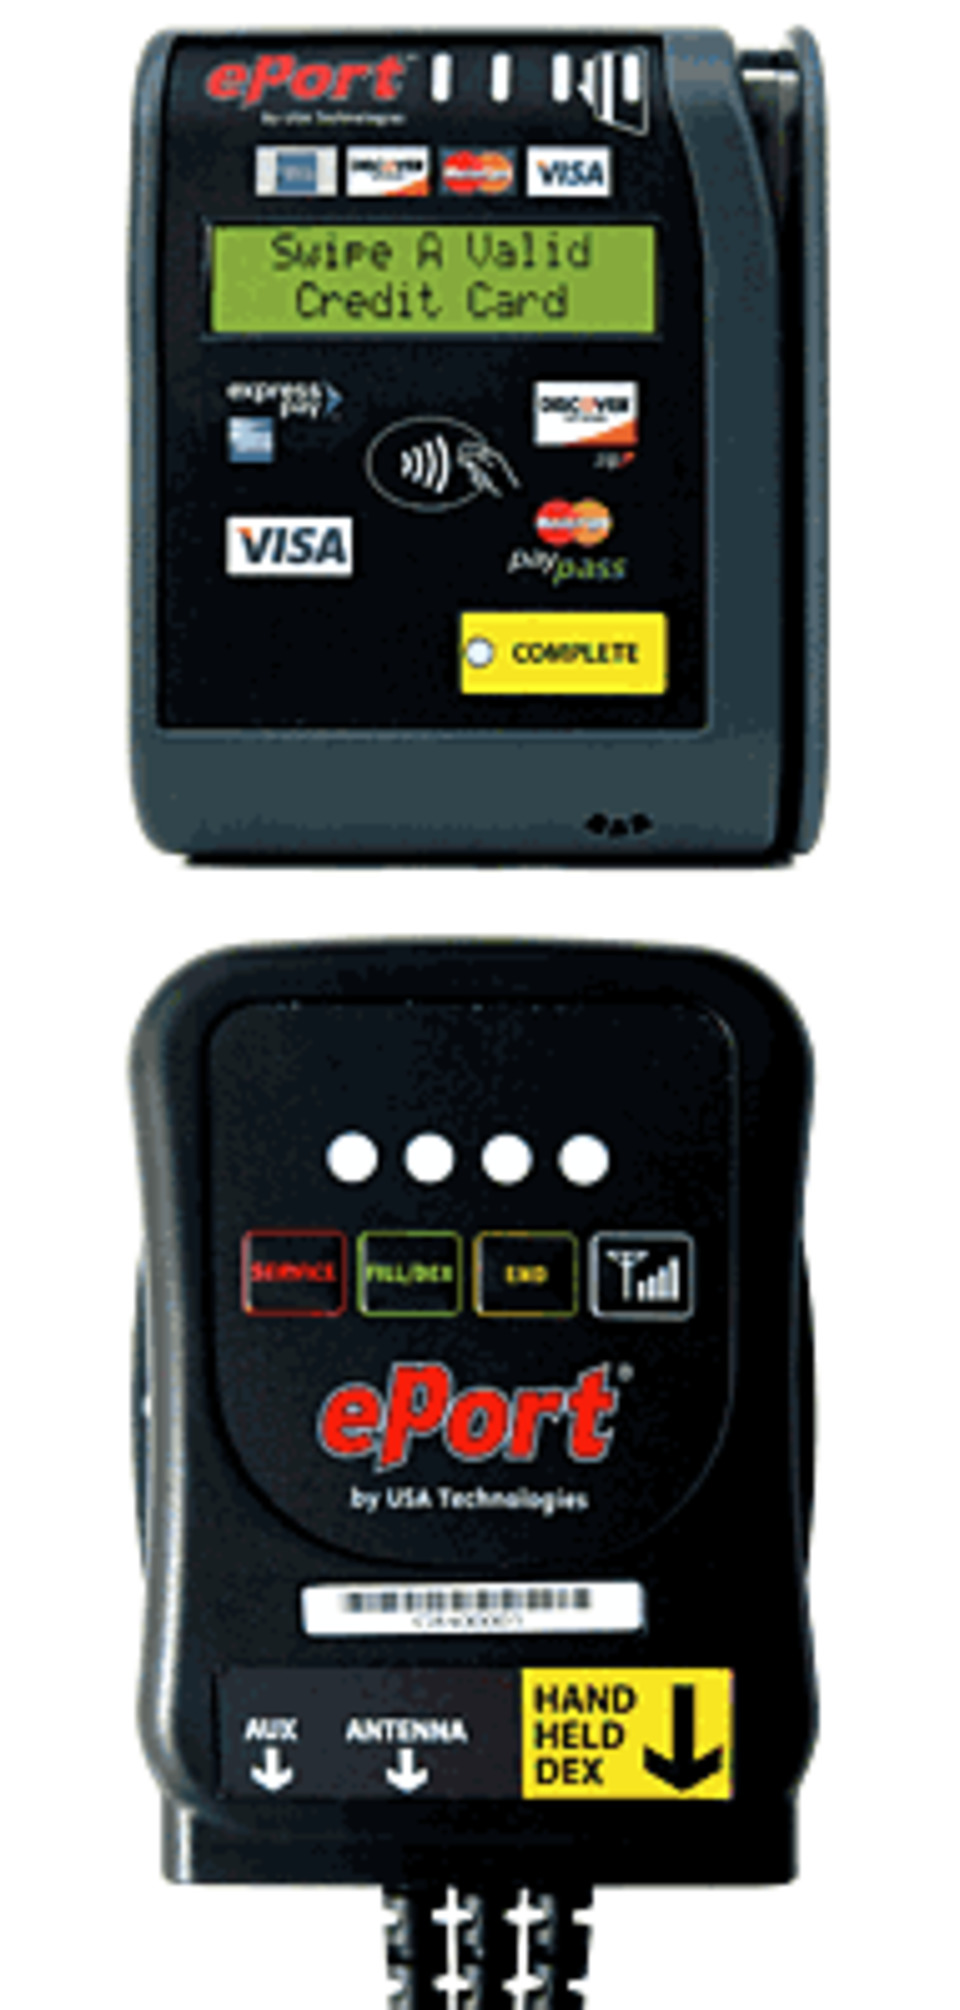 USA Technologies Announces Contactless Debit Card